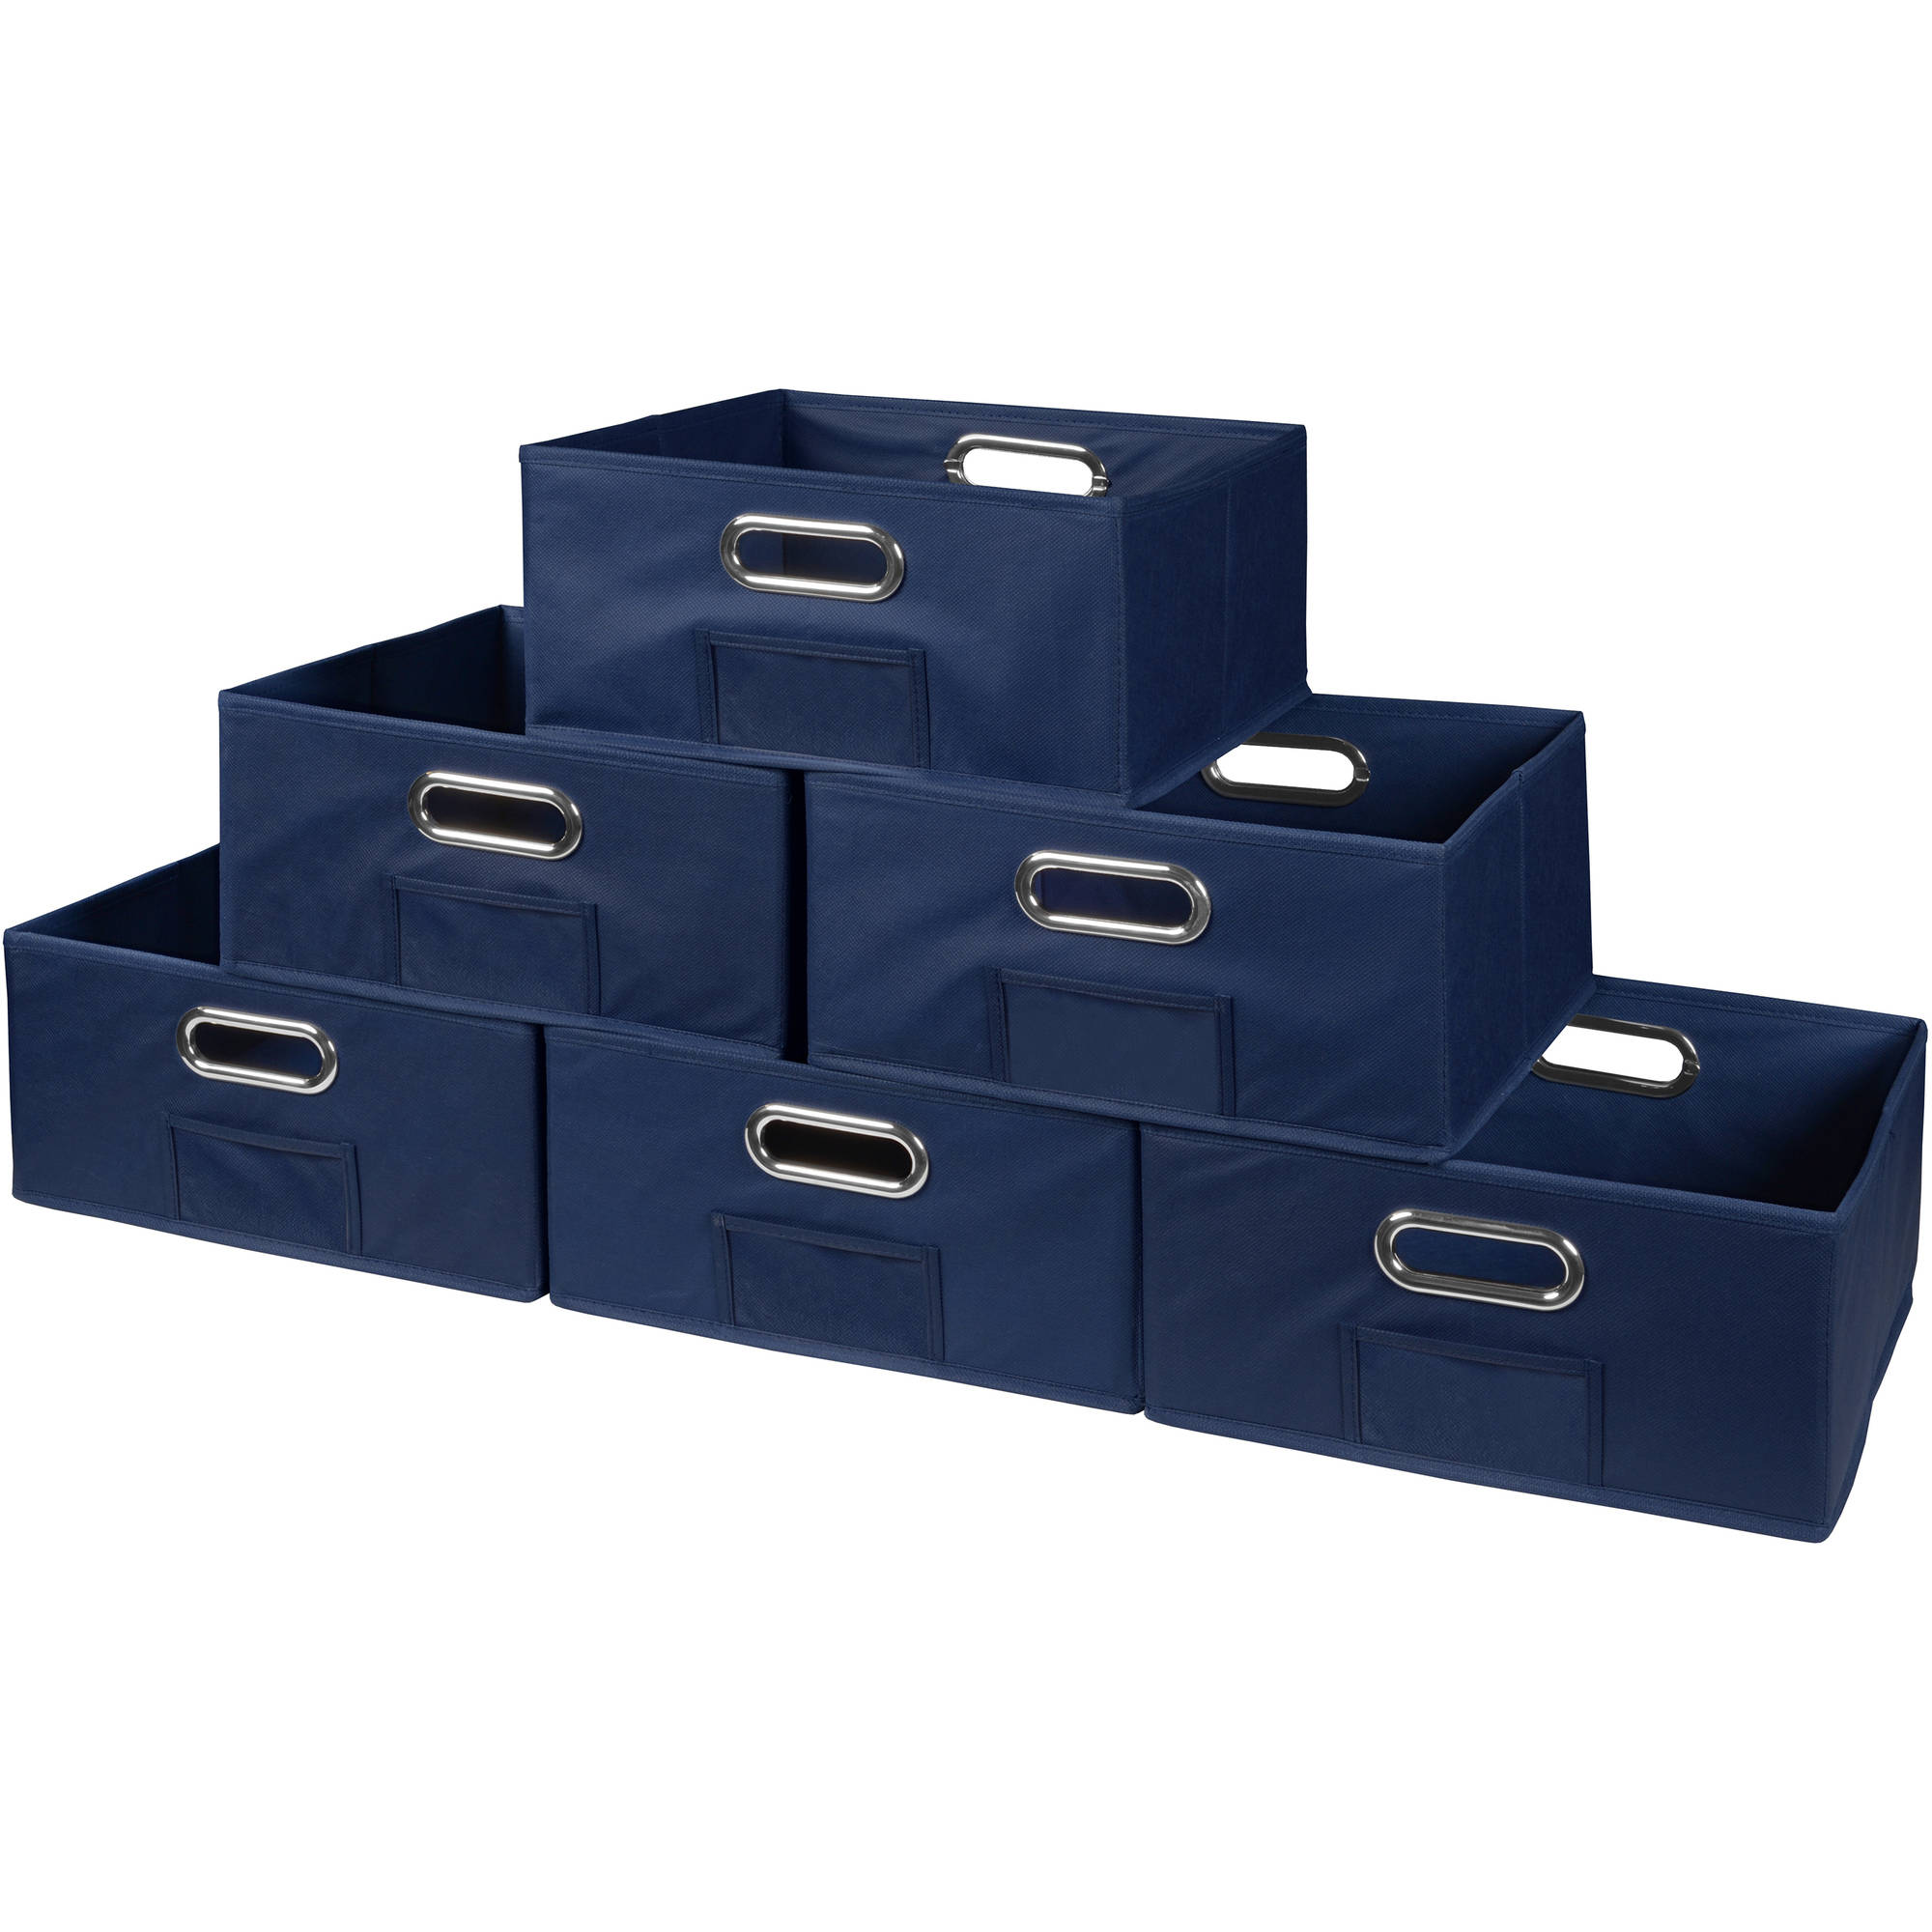 Niche Cubo Set Of 6 Half Size Foldable Fabric Storage Bins  Blue